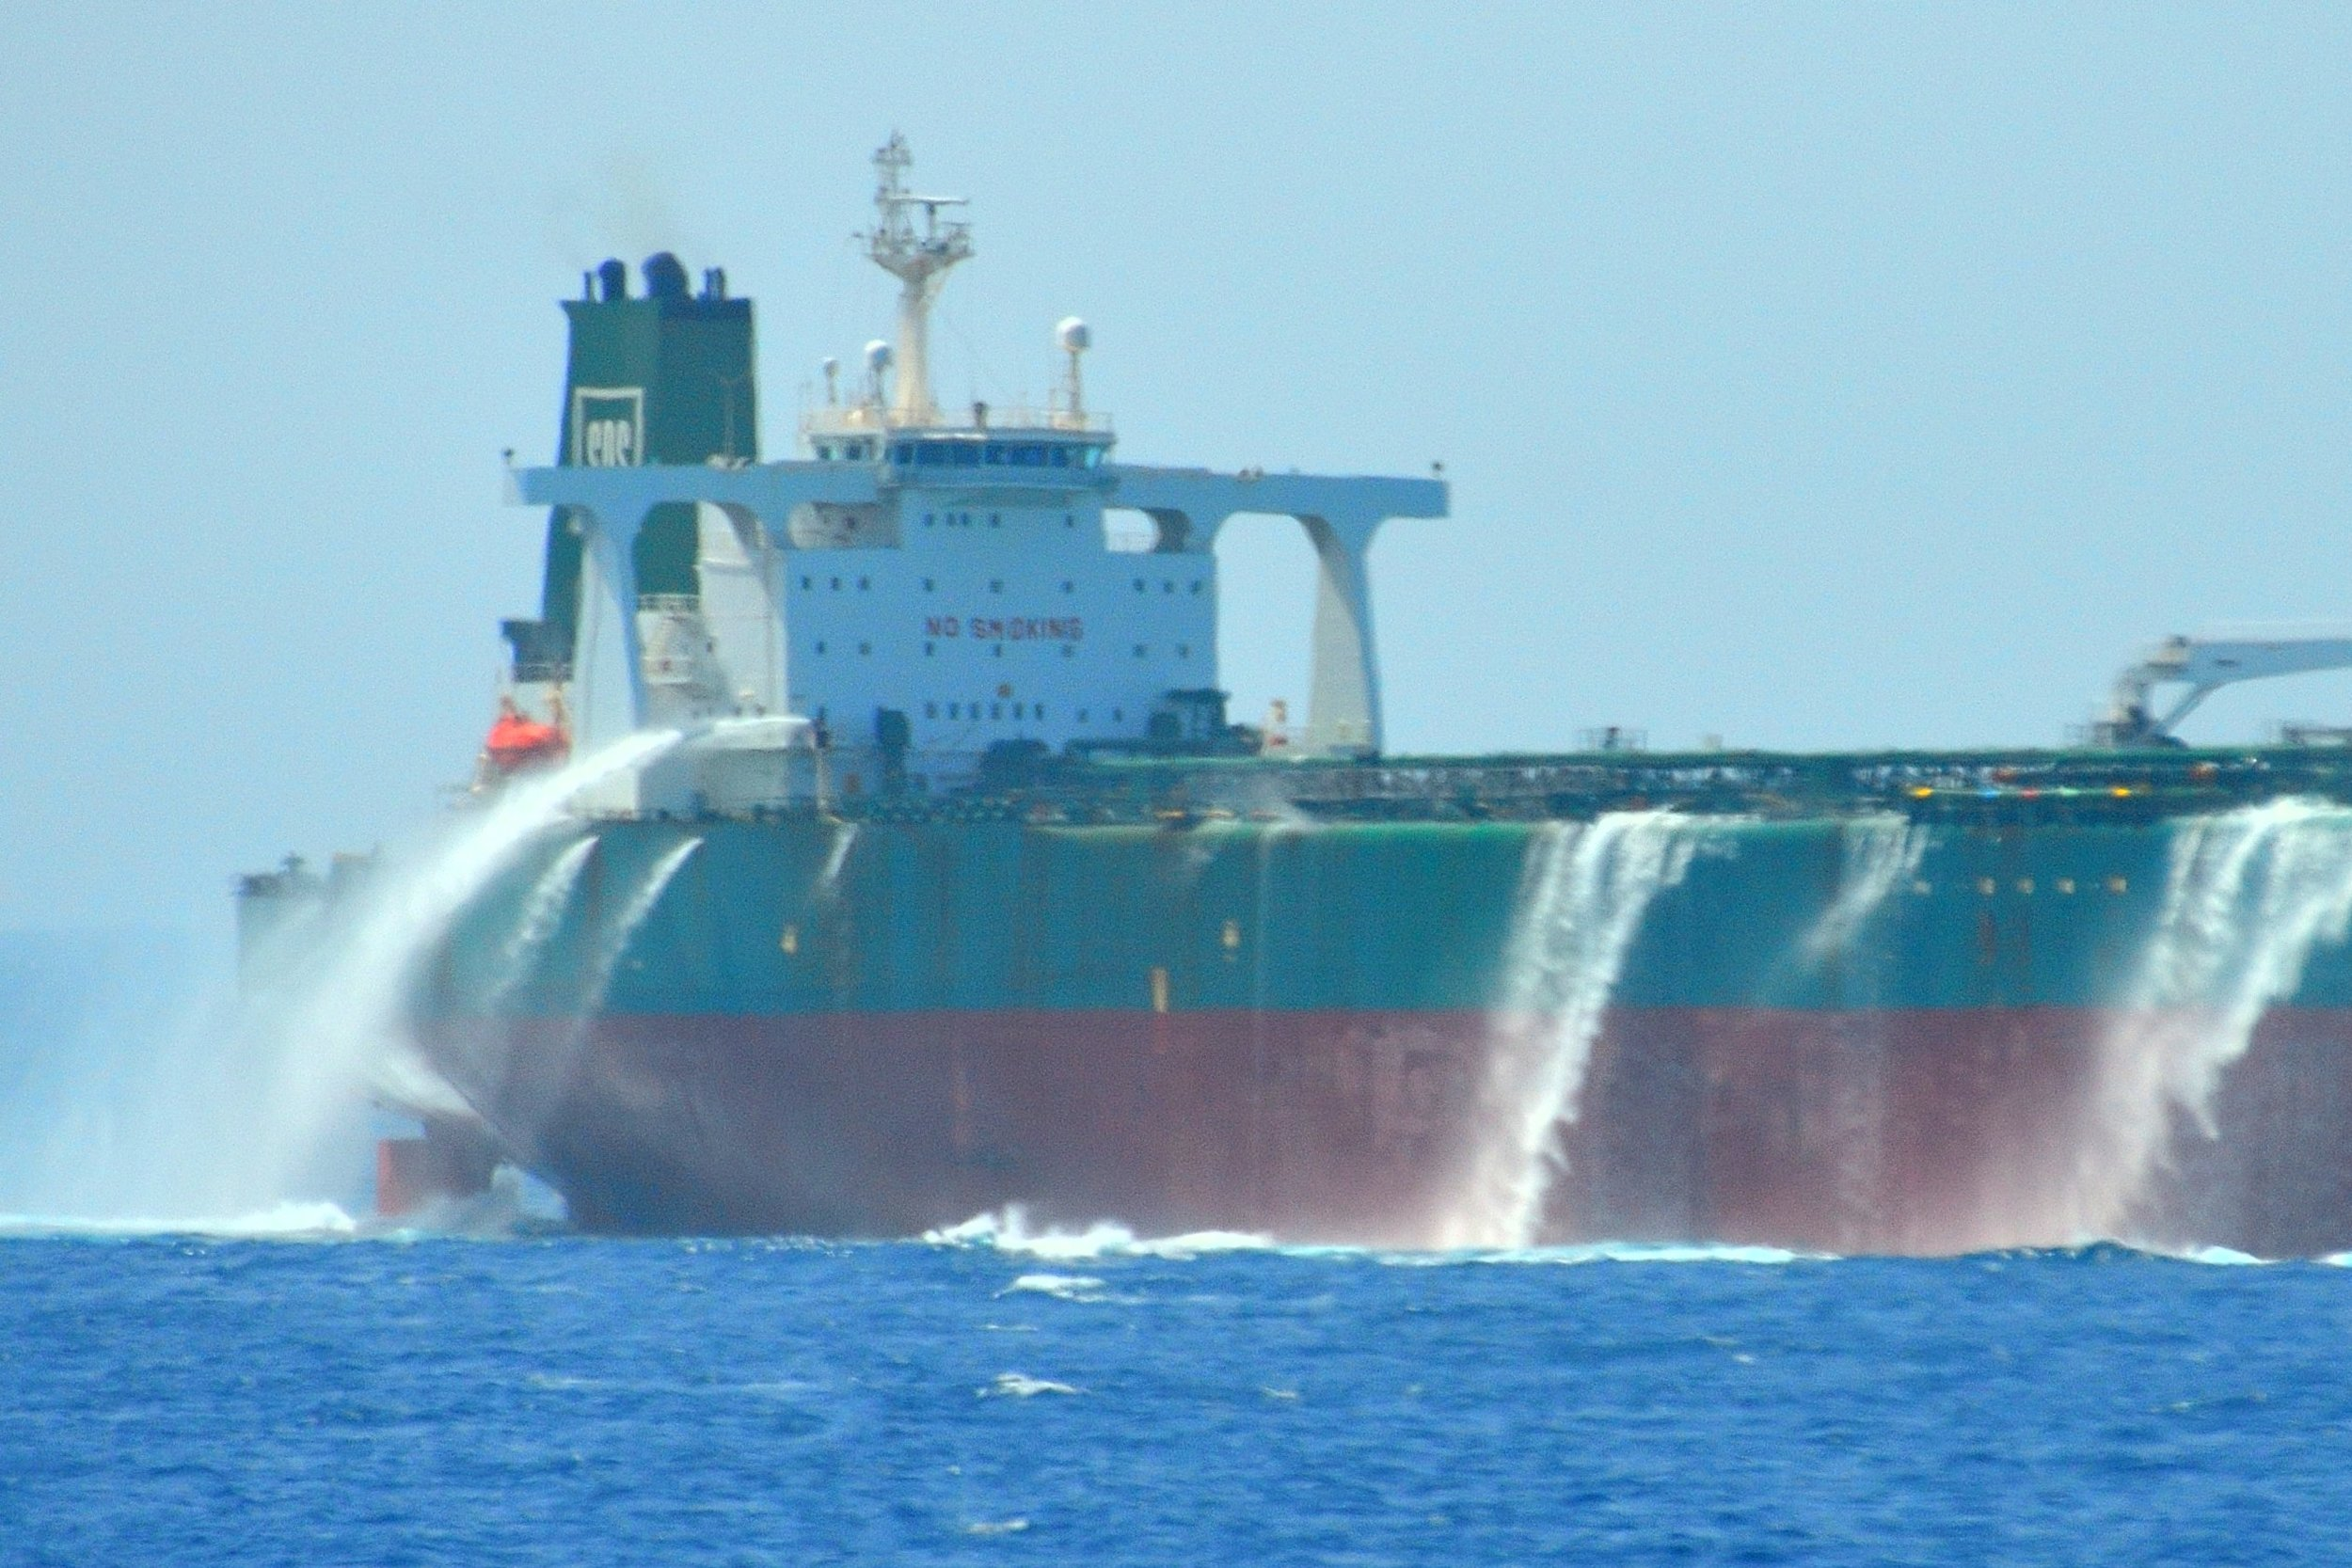 The crew of an oil tanker perform a piracy drill in the Gulf of Aden off the coast of Somalia. Pirates are deterred from boarding by large volumes of water being poured over the sides of the ship.